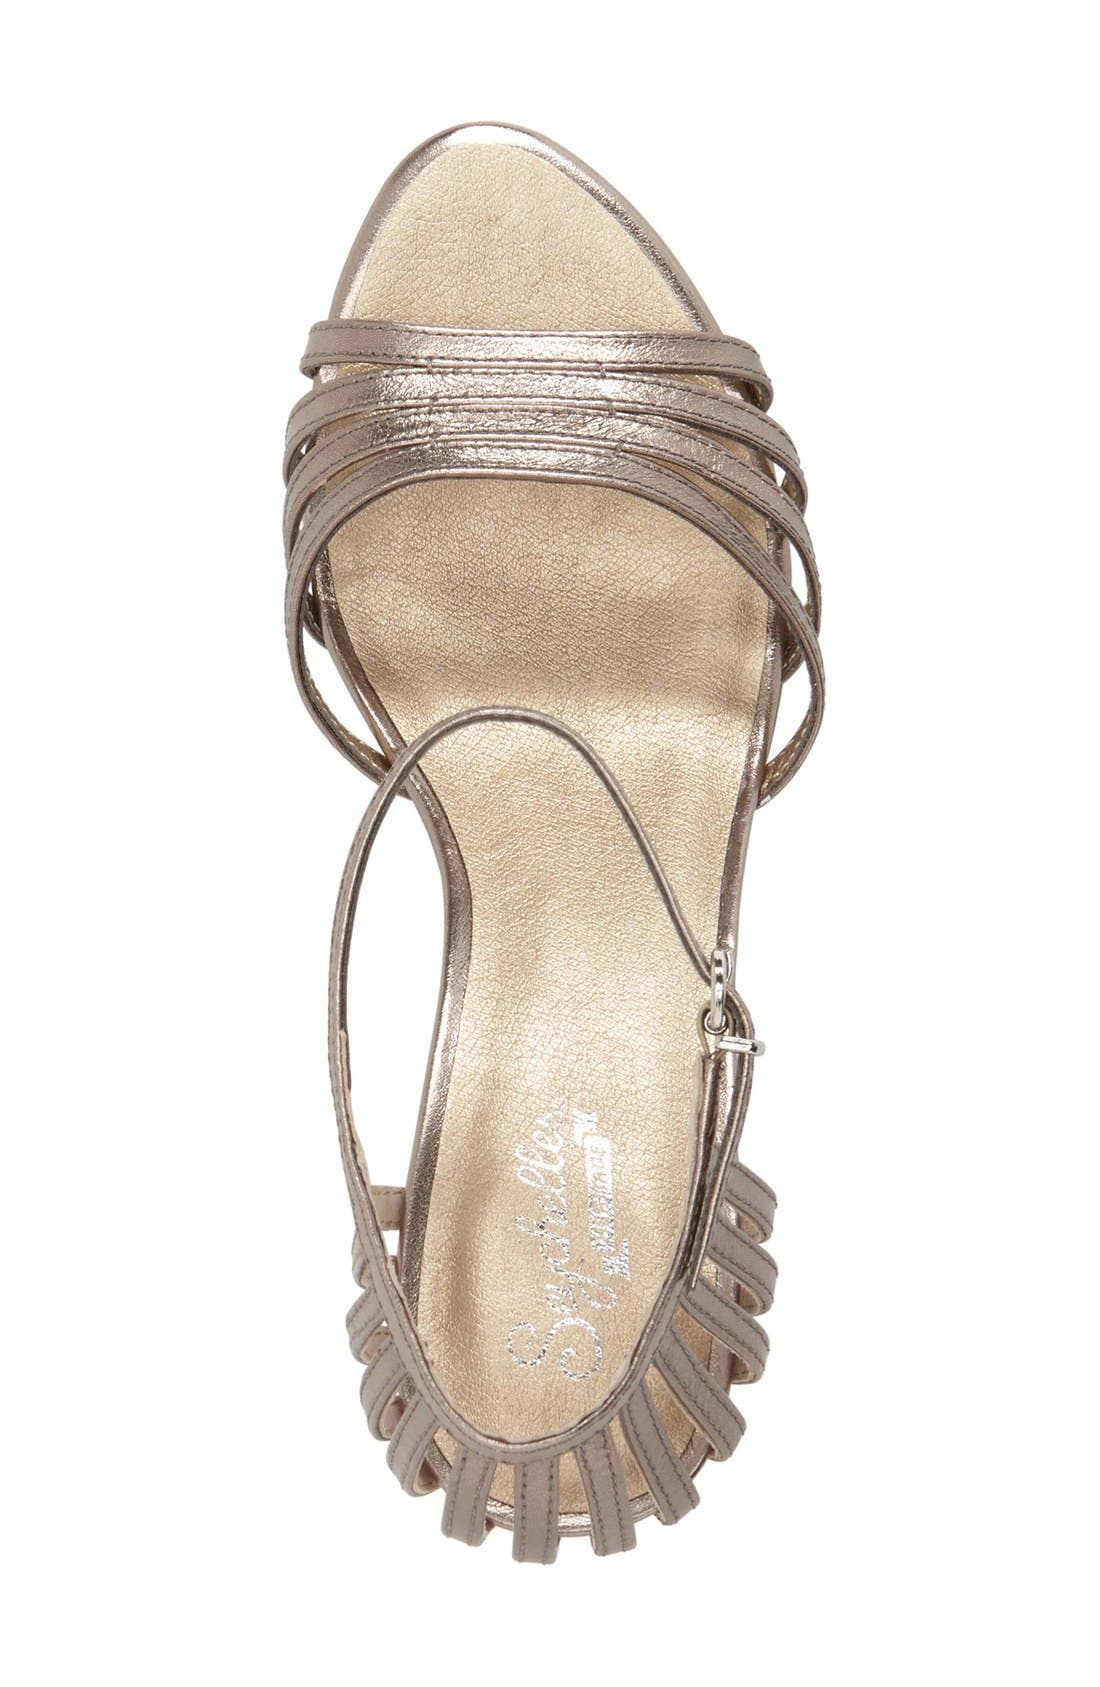 'Song and Dance' Ankle Strap Pump,                             Alternate thumbnail 3, color,                             Pewter Leather